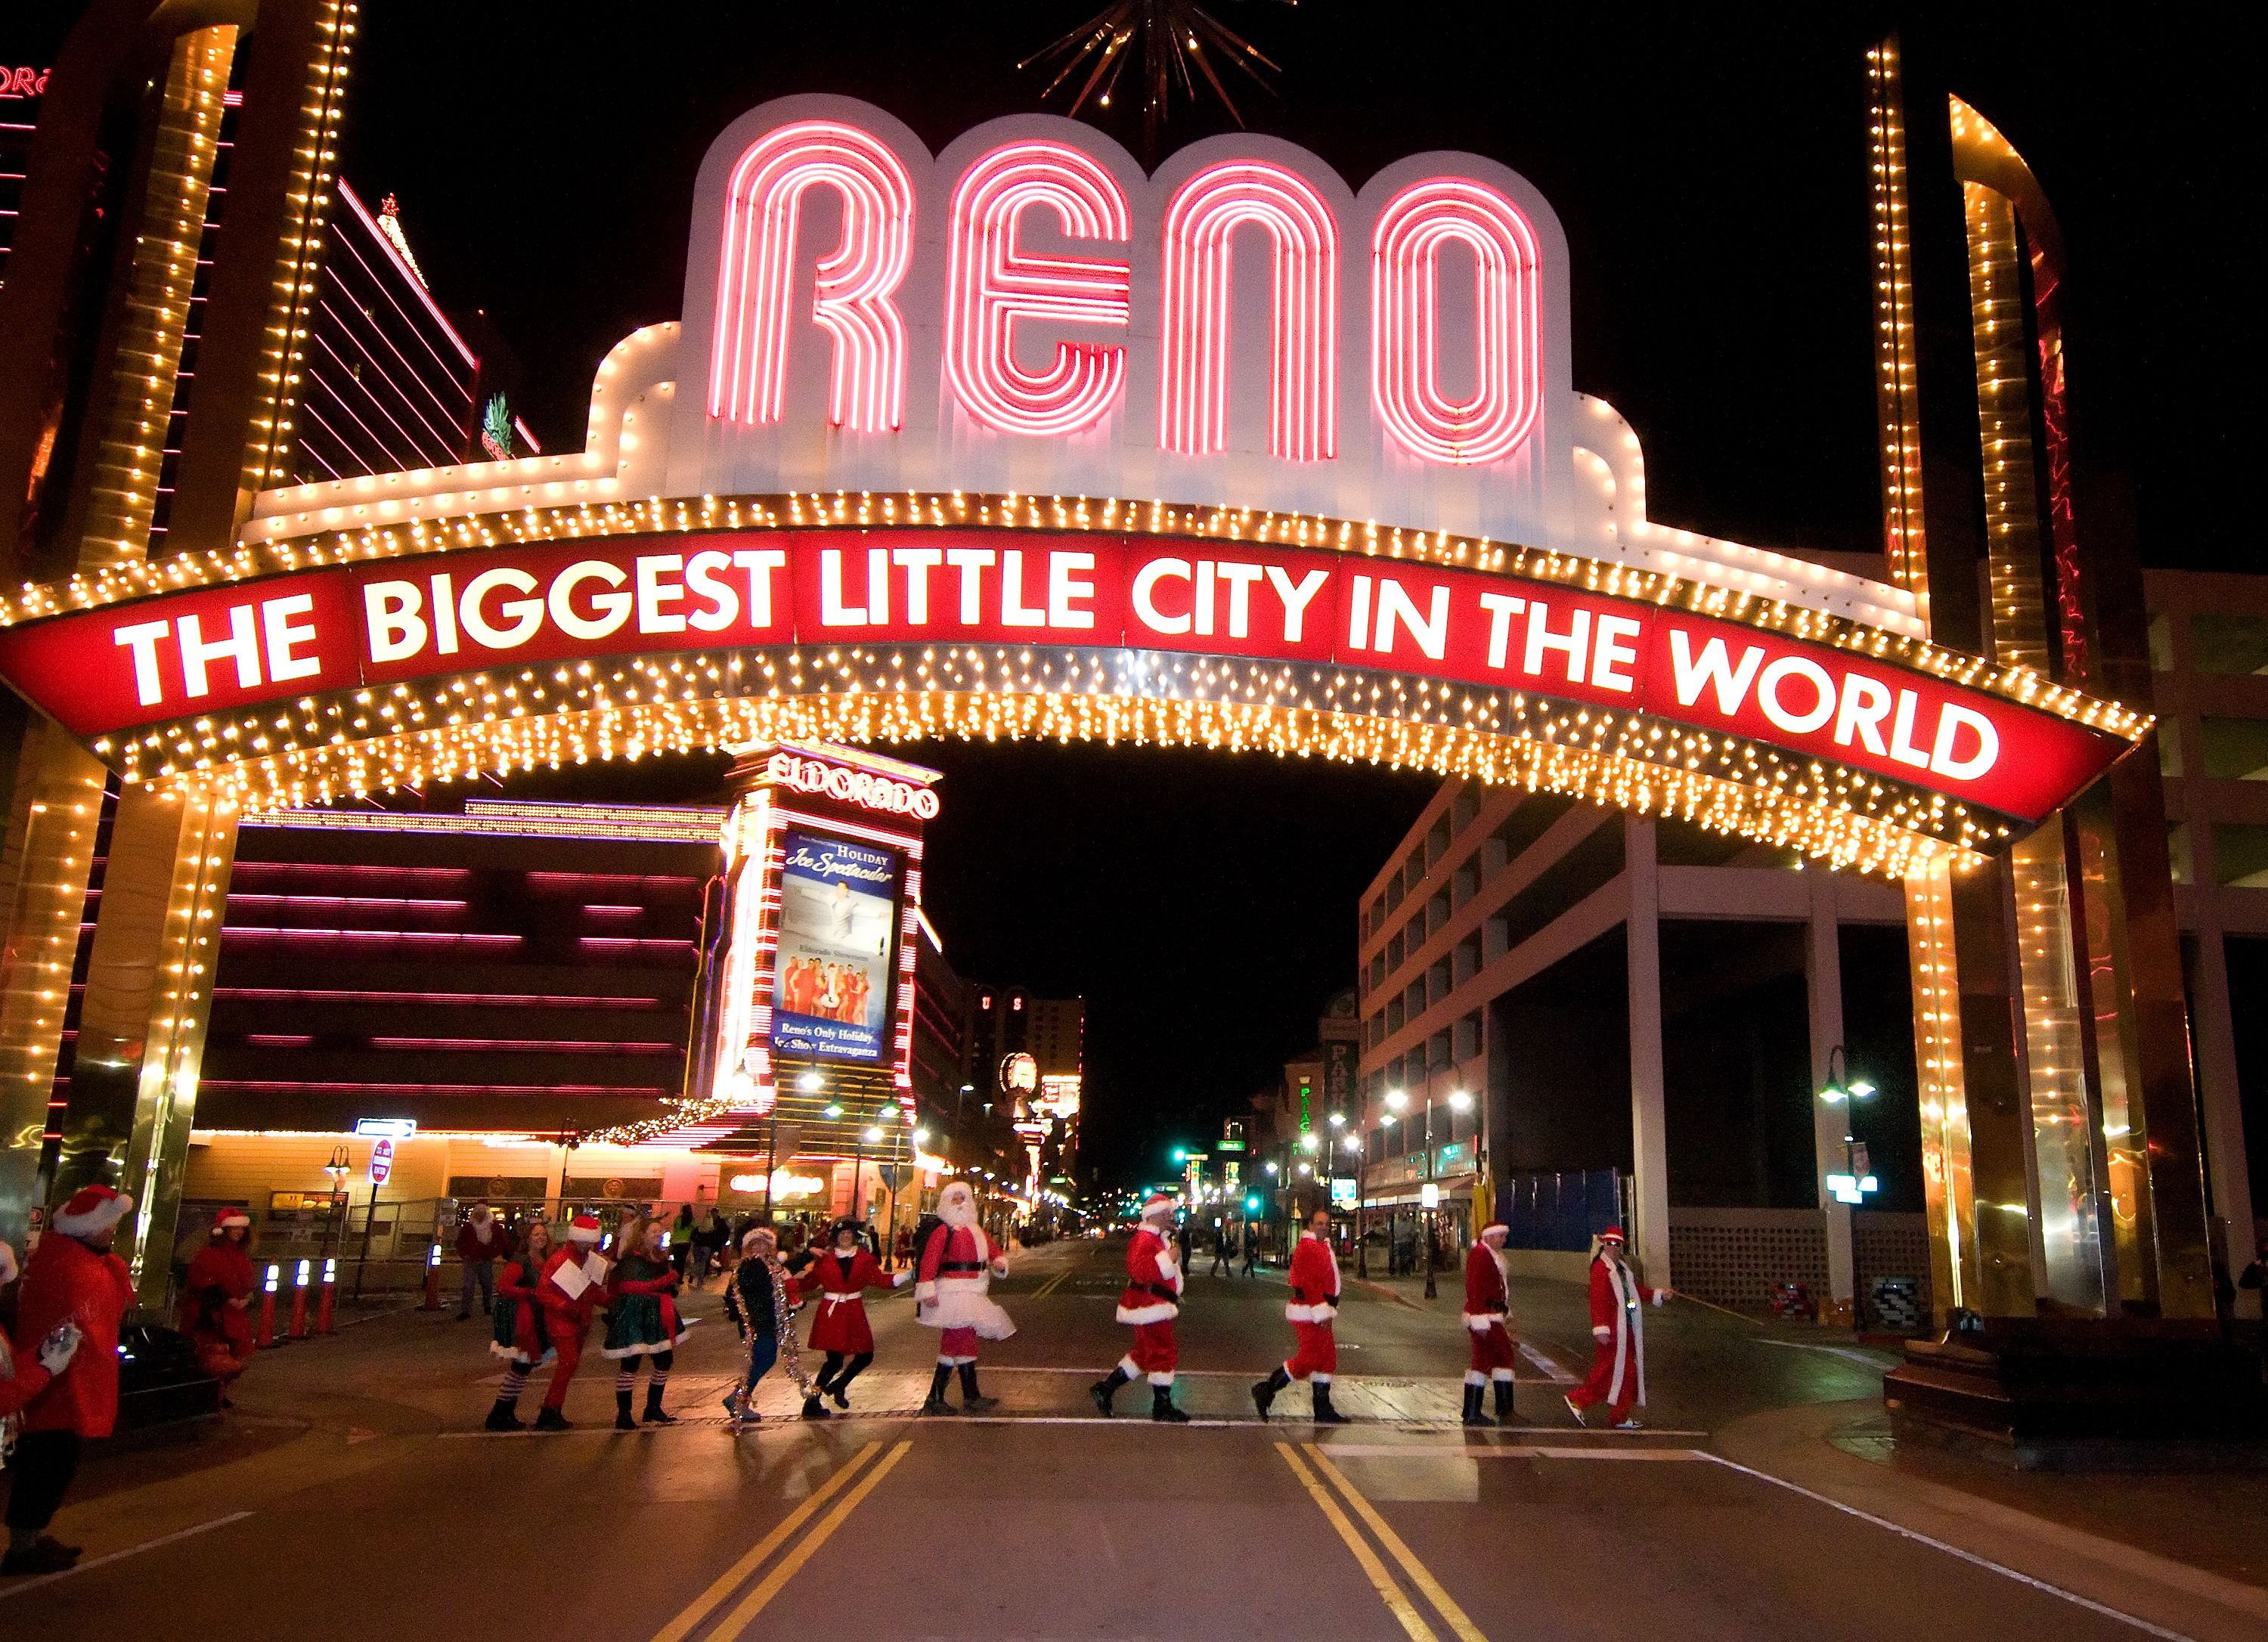 Don't Miss These Christmas Lights Displays in the Reno, Nevada Area